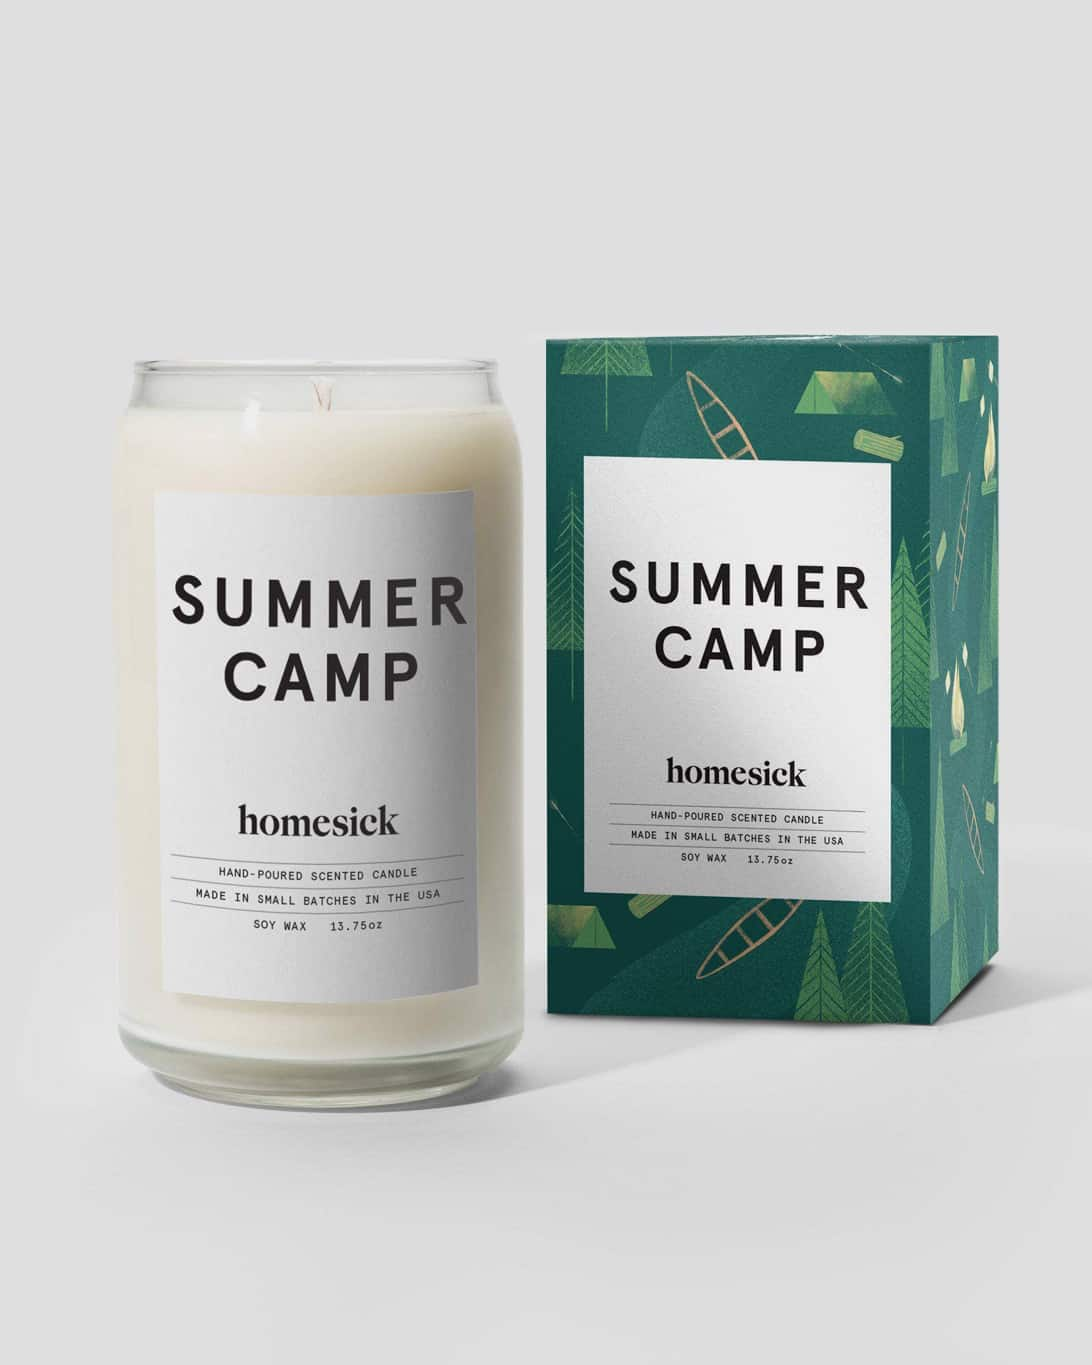 A photo of the Homesick Summer Camp Candle